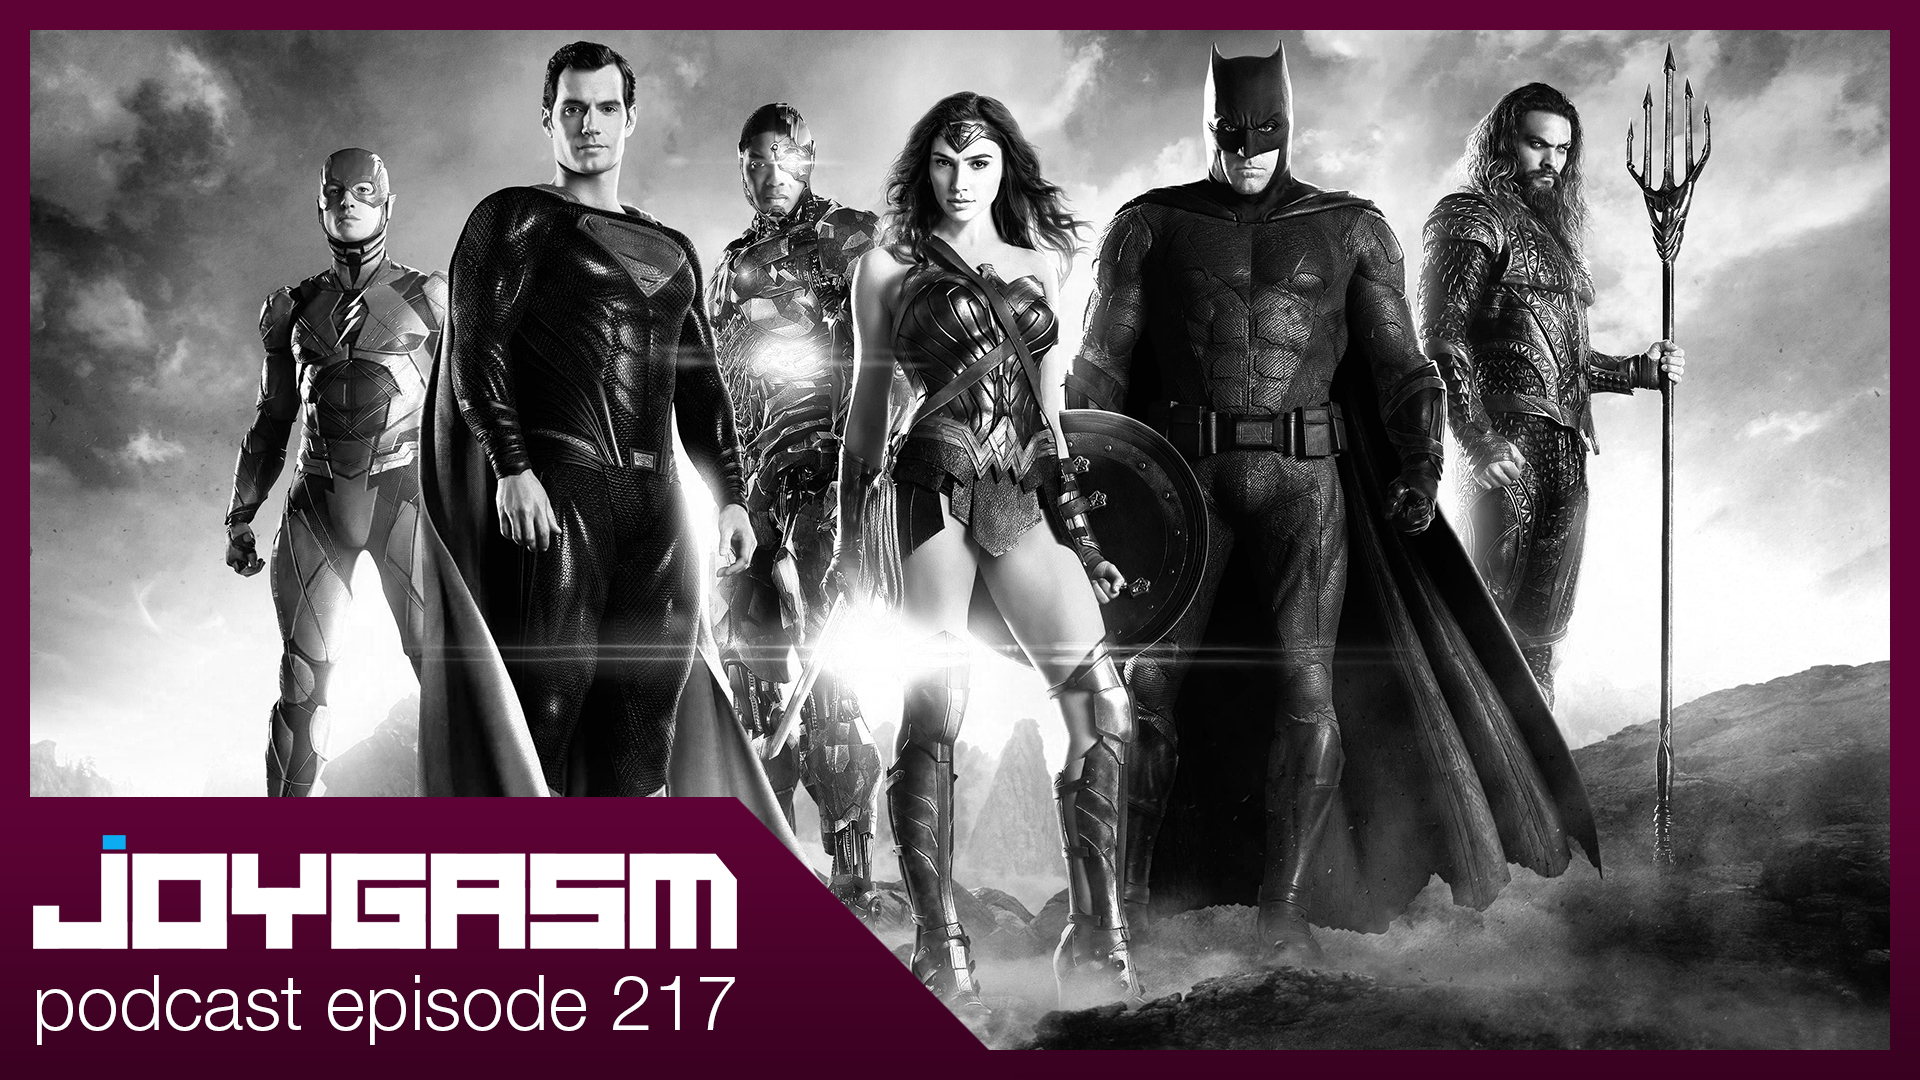 Ep. 217: Zack Snyder Justice League Review